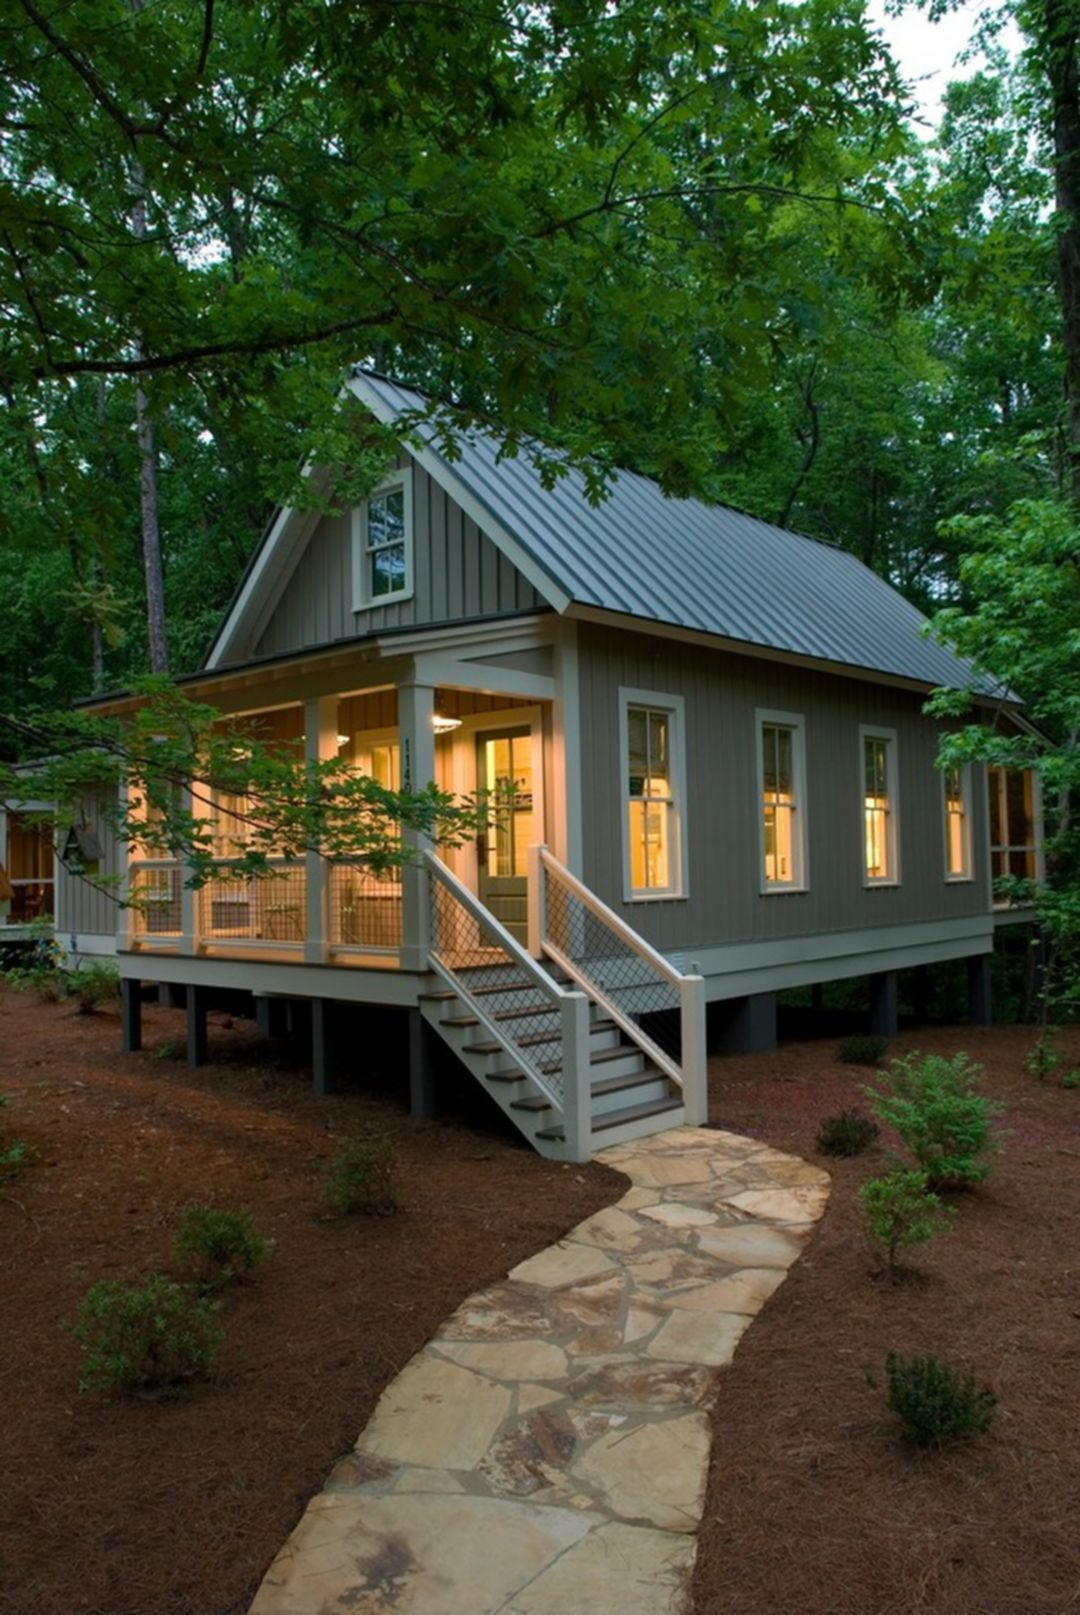 Awesome Tiny Cottages Design Ideas 200 Cottage House Exterior Small Cottage House Plans Small Lake Houses